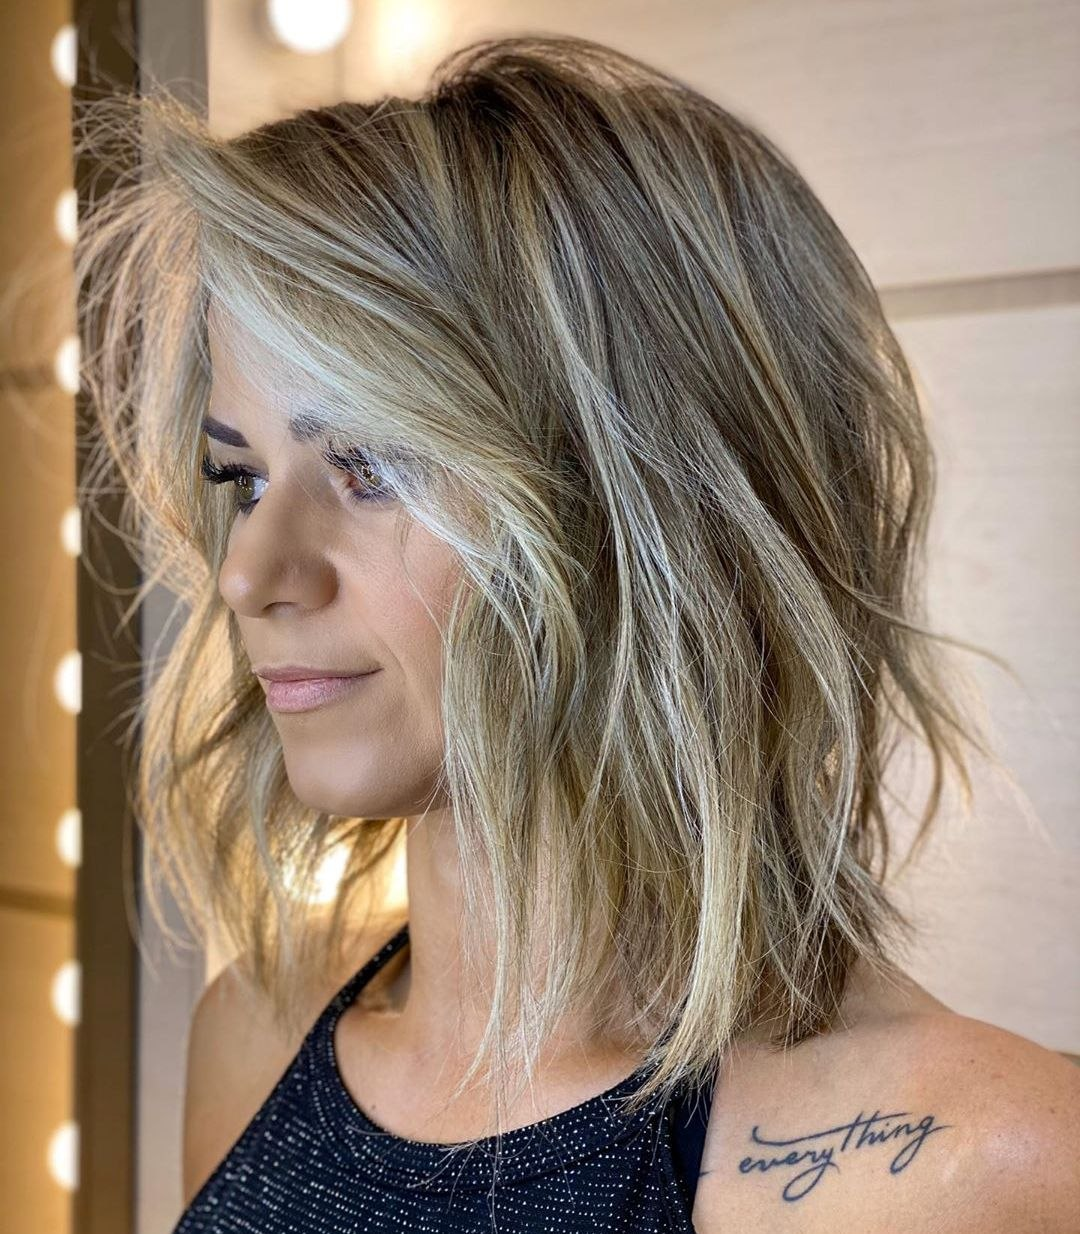 New Hairstyles for Women Best Collection 40 Newest Haircuts for Women and Hair Trends for 2021 - Hair Adviser